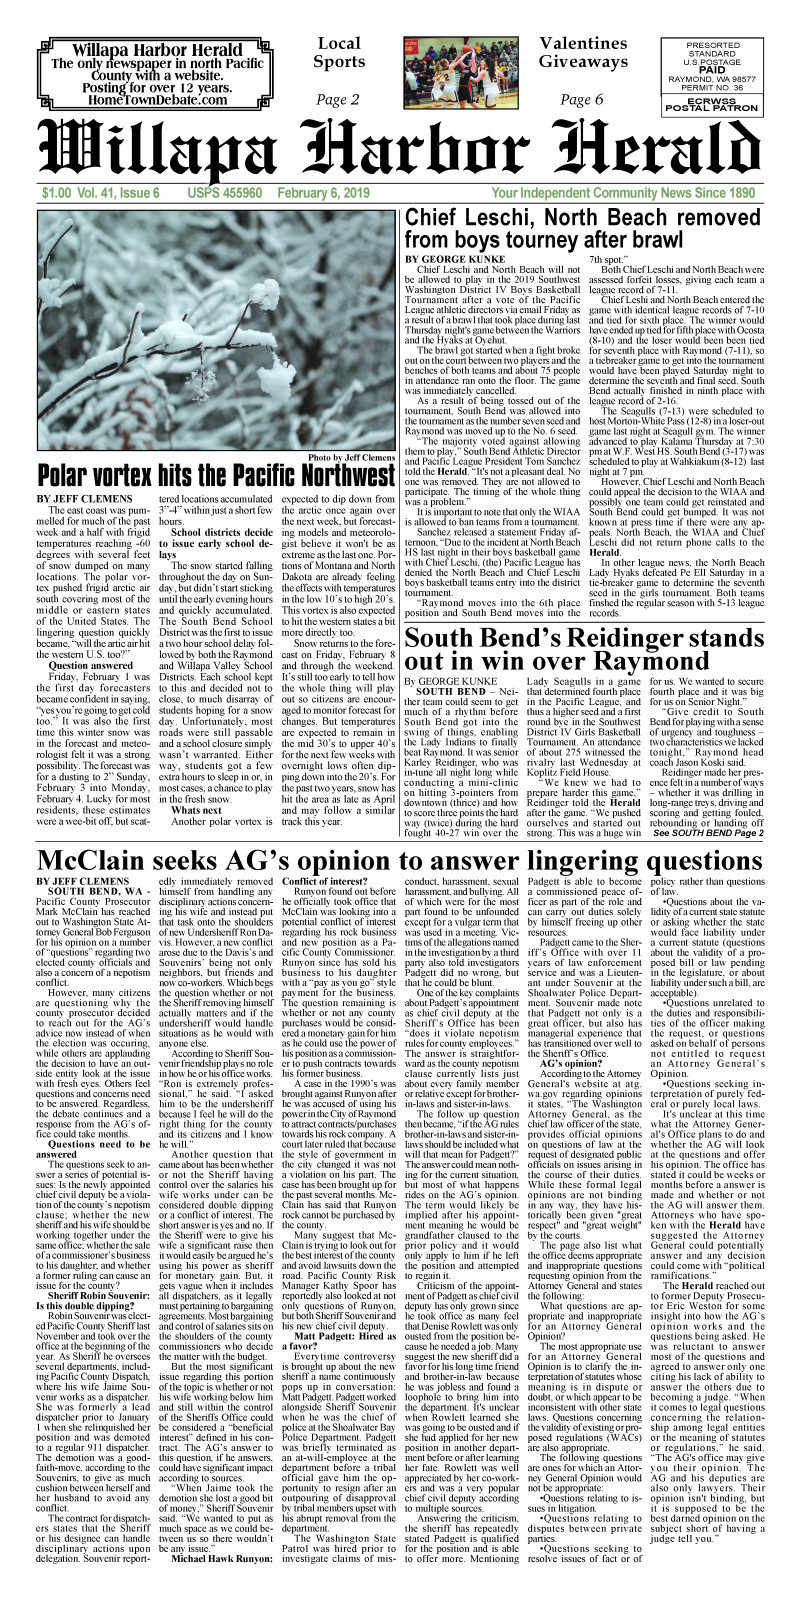 February 6, 2019 Willapa Harbor Herald